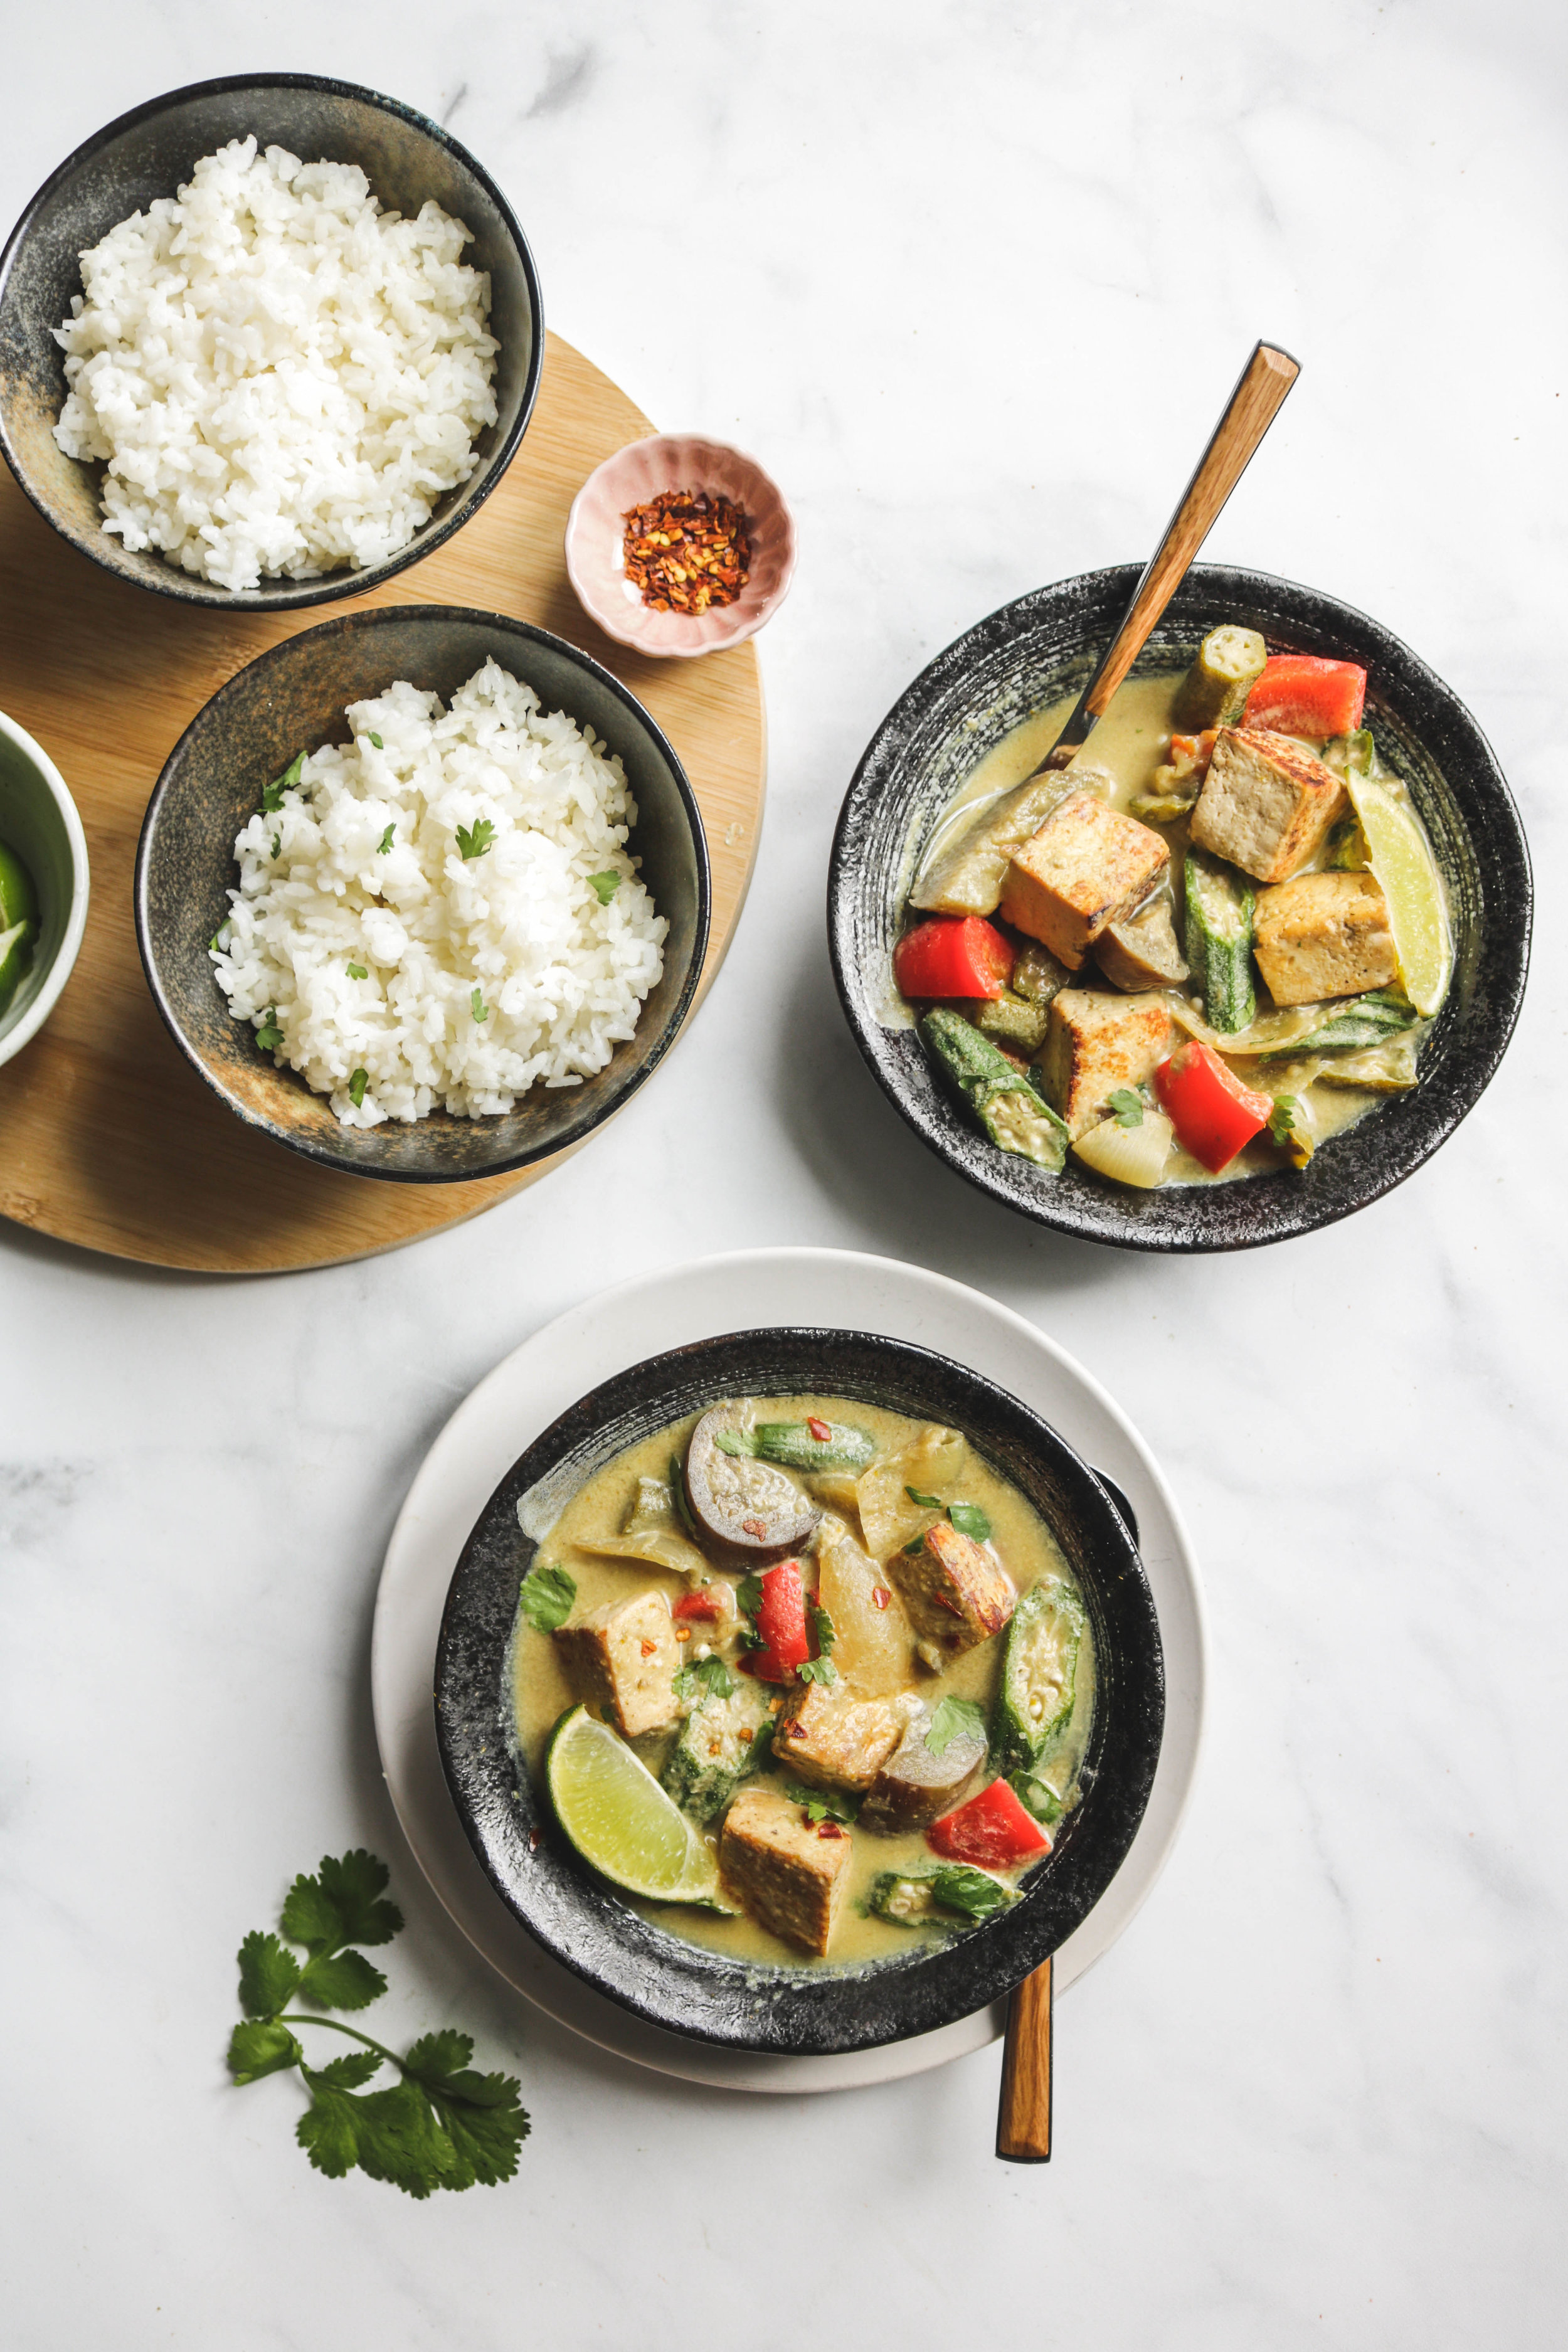 thai green curry with tofu, vegetables and rice in a black bowl